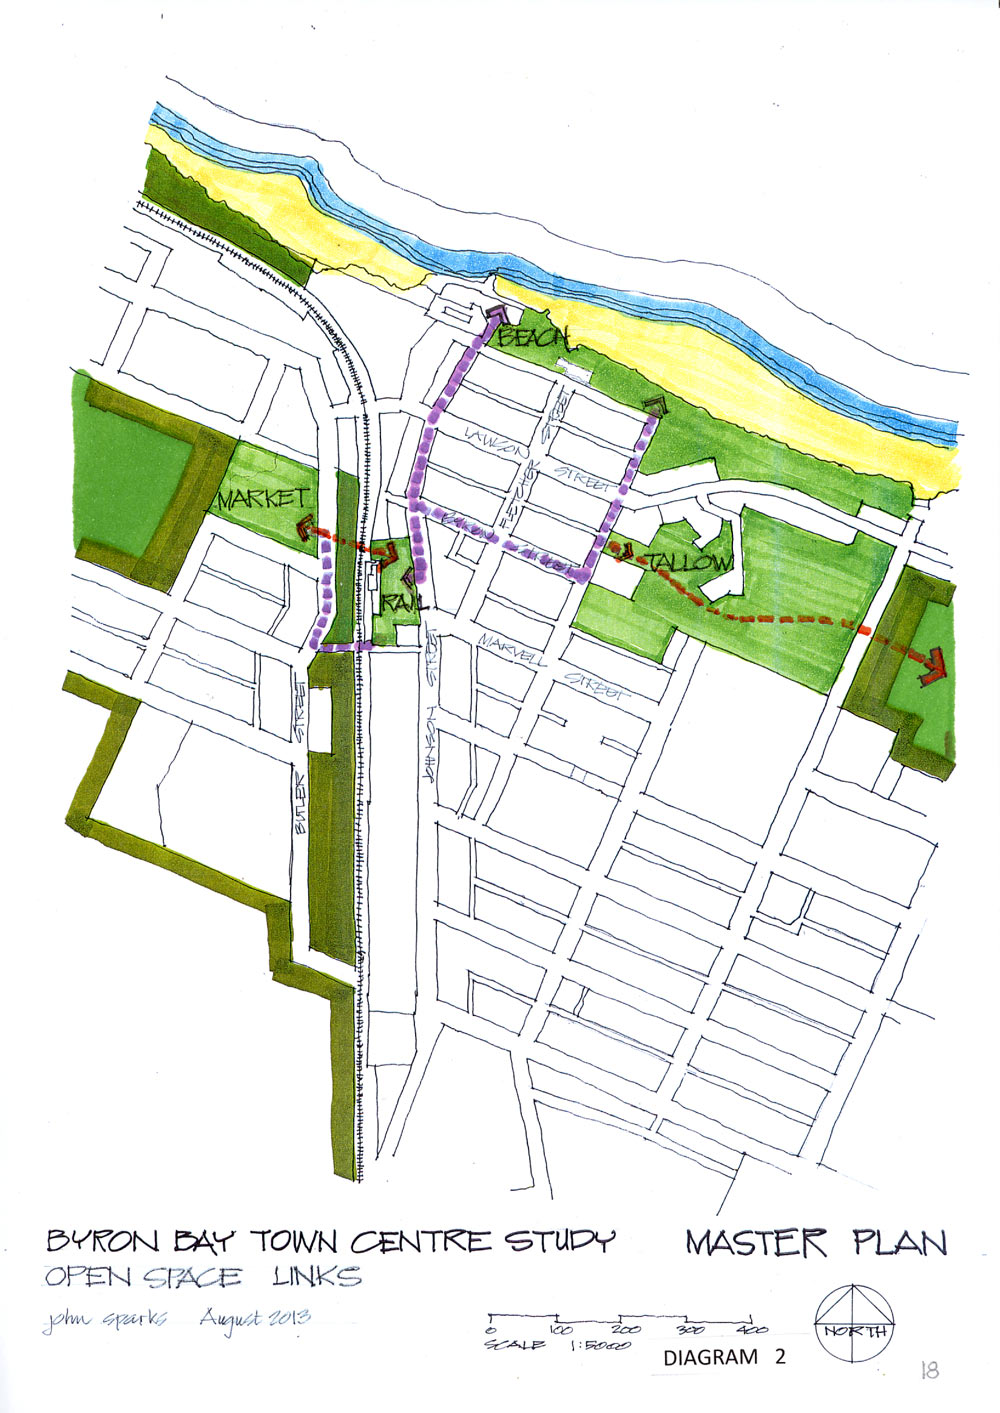 BYRON BAY TOWN CENTRE MASTER PLAN diagram2